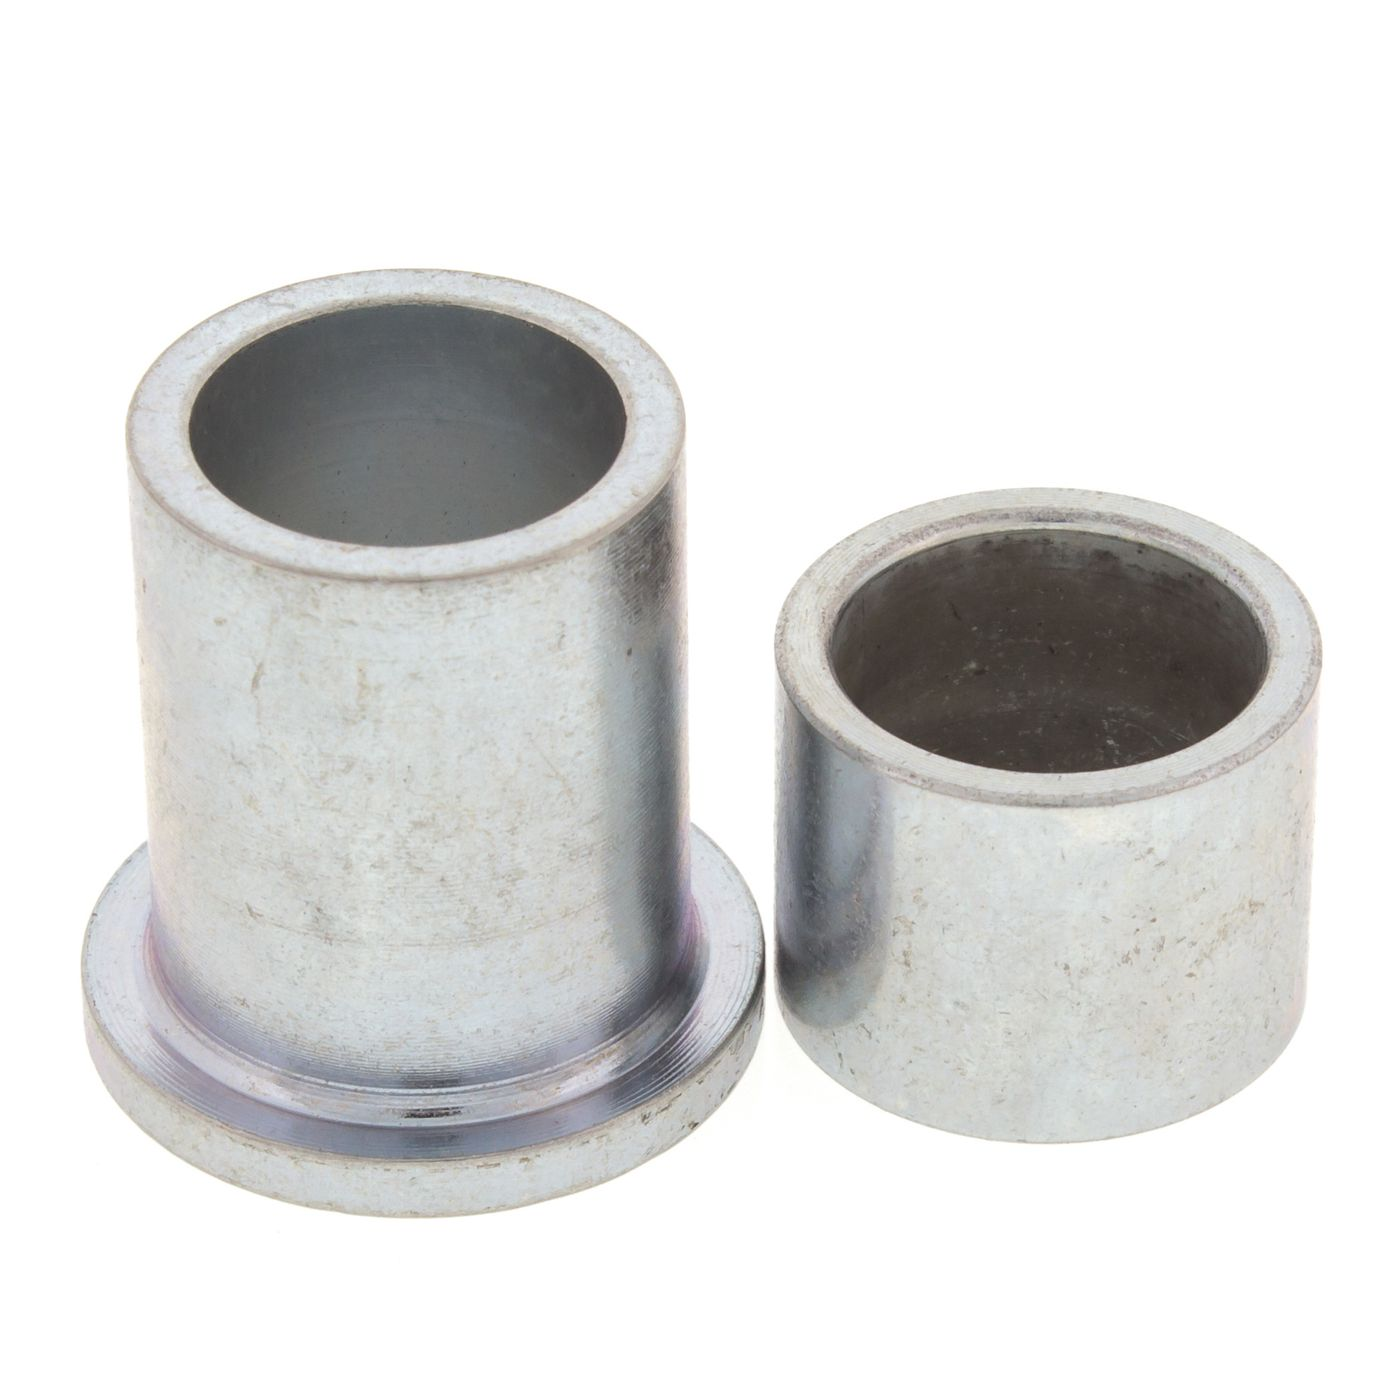 Wrp Front Wheel Spacer Kits - WRP111067 image